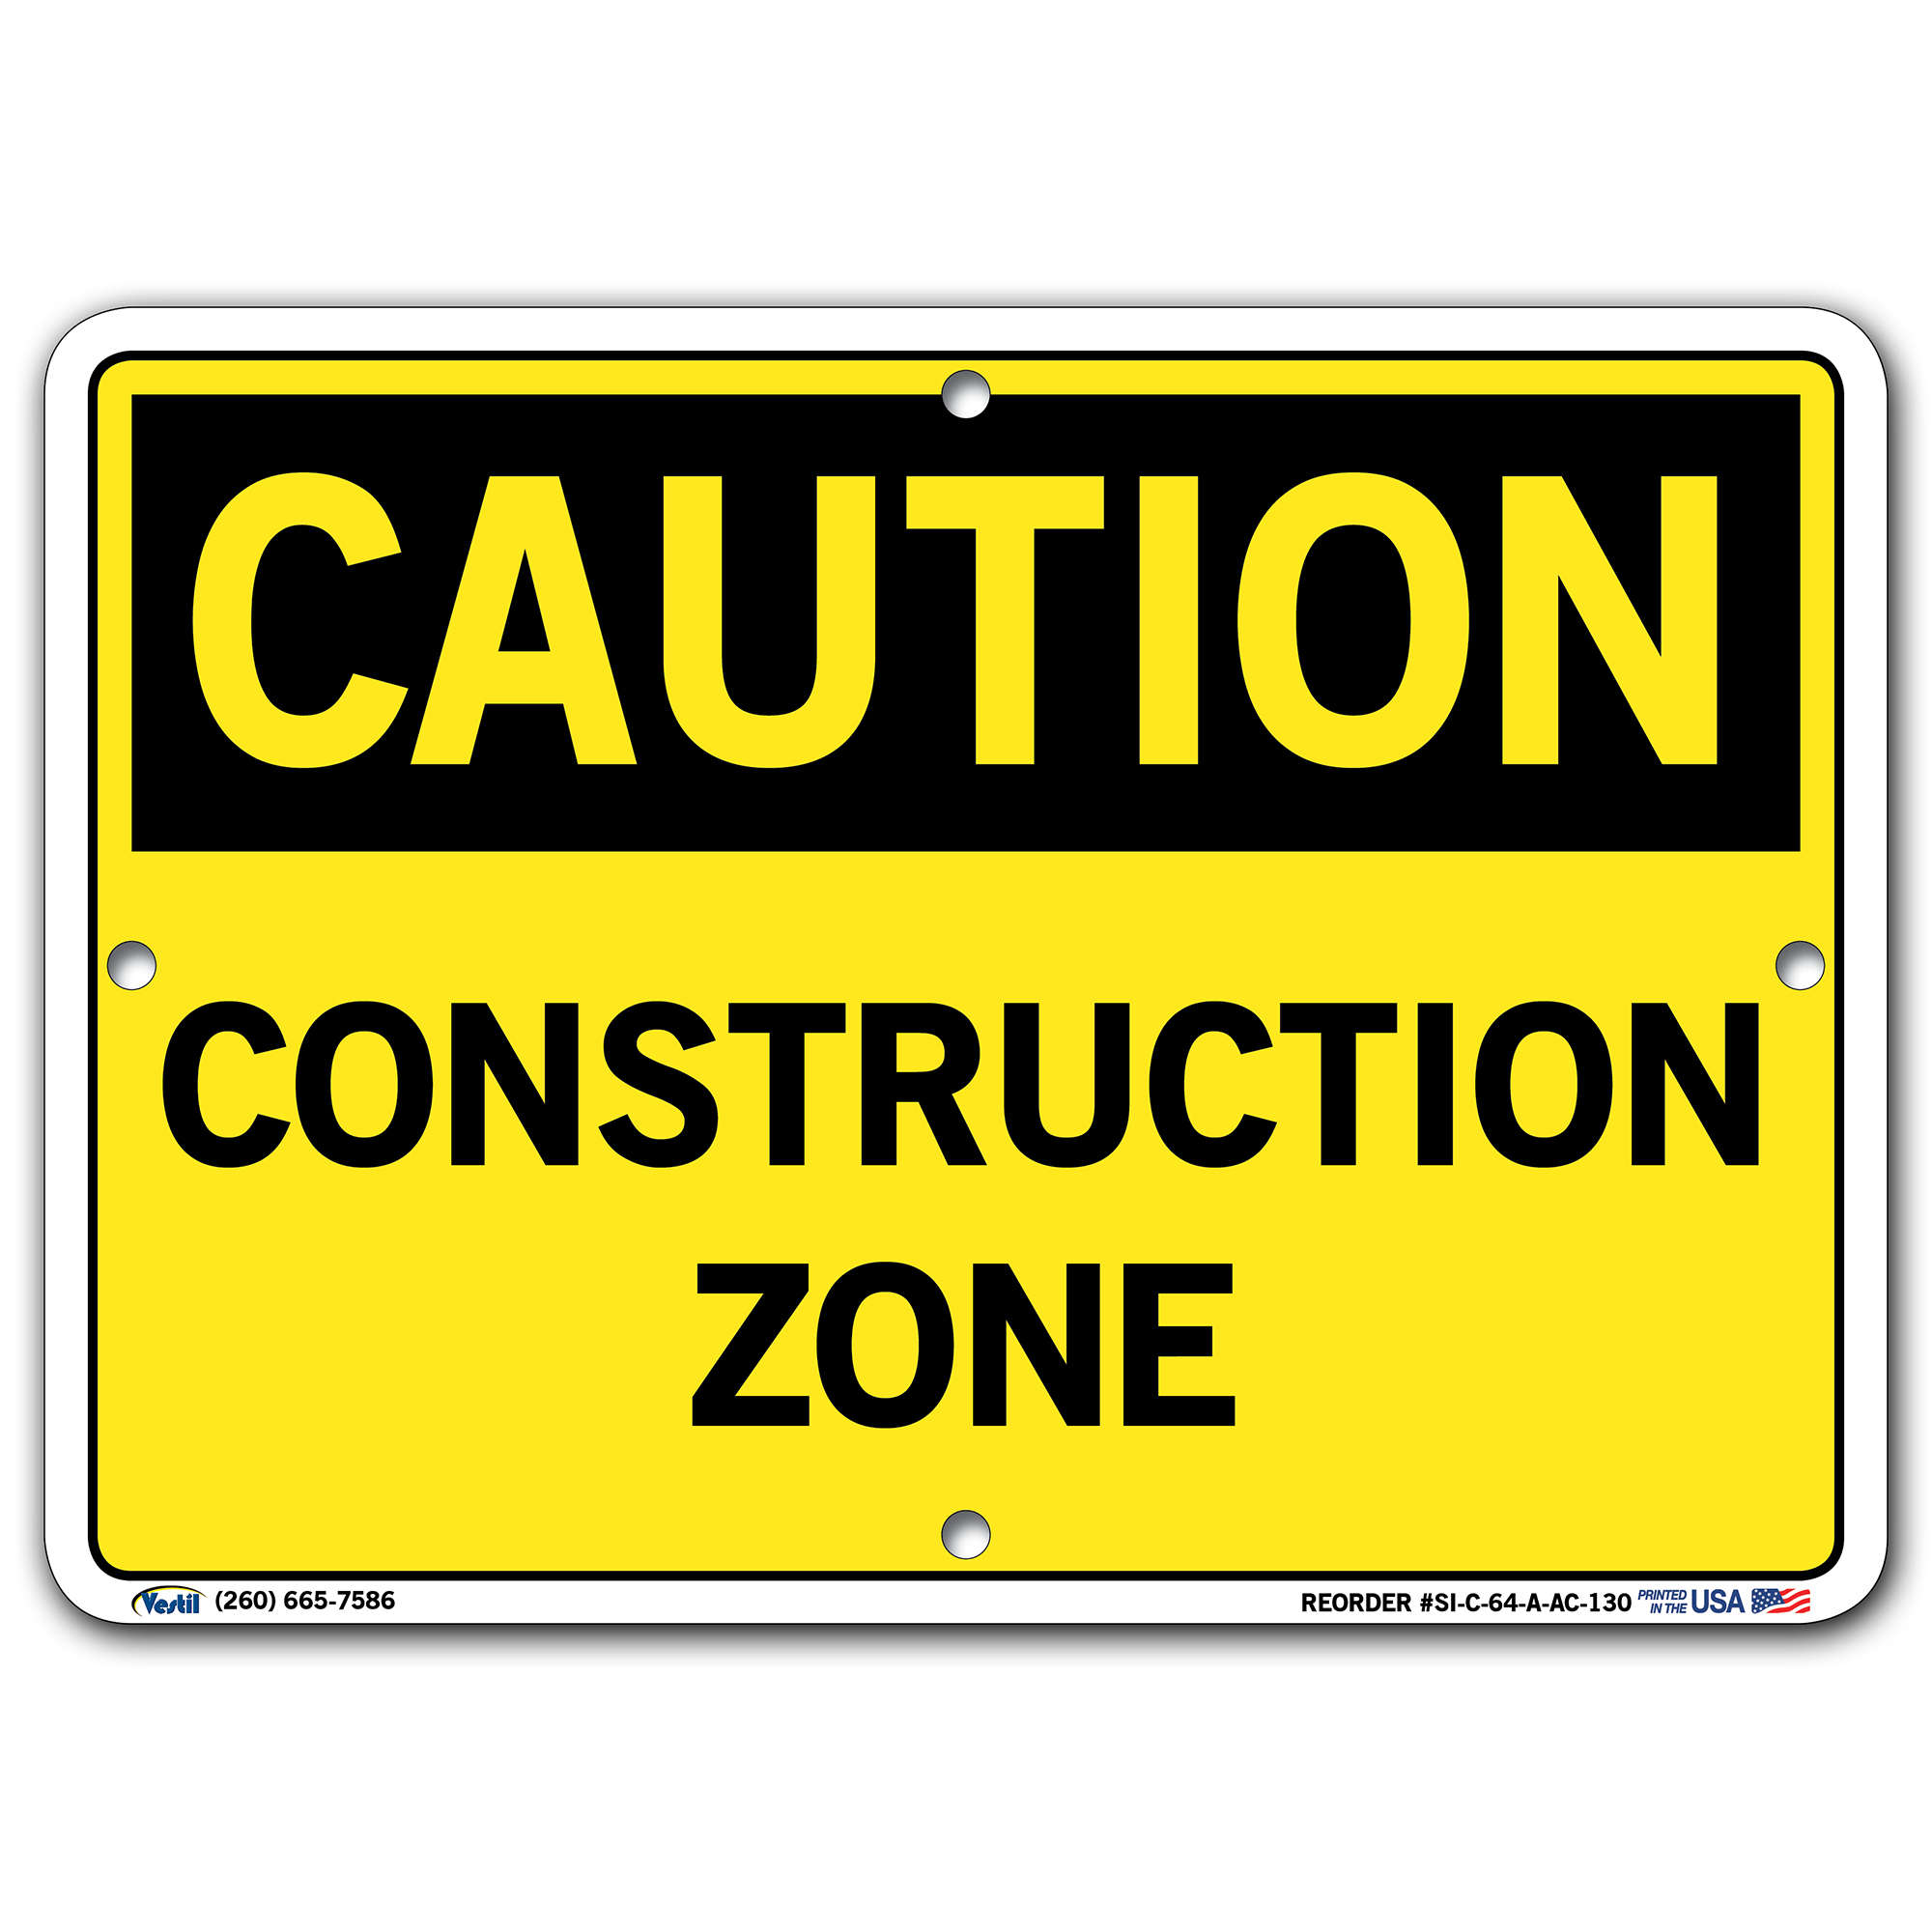 Vestil Caution Construction Zone